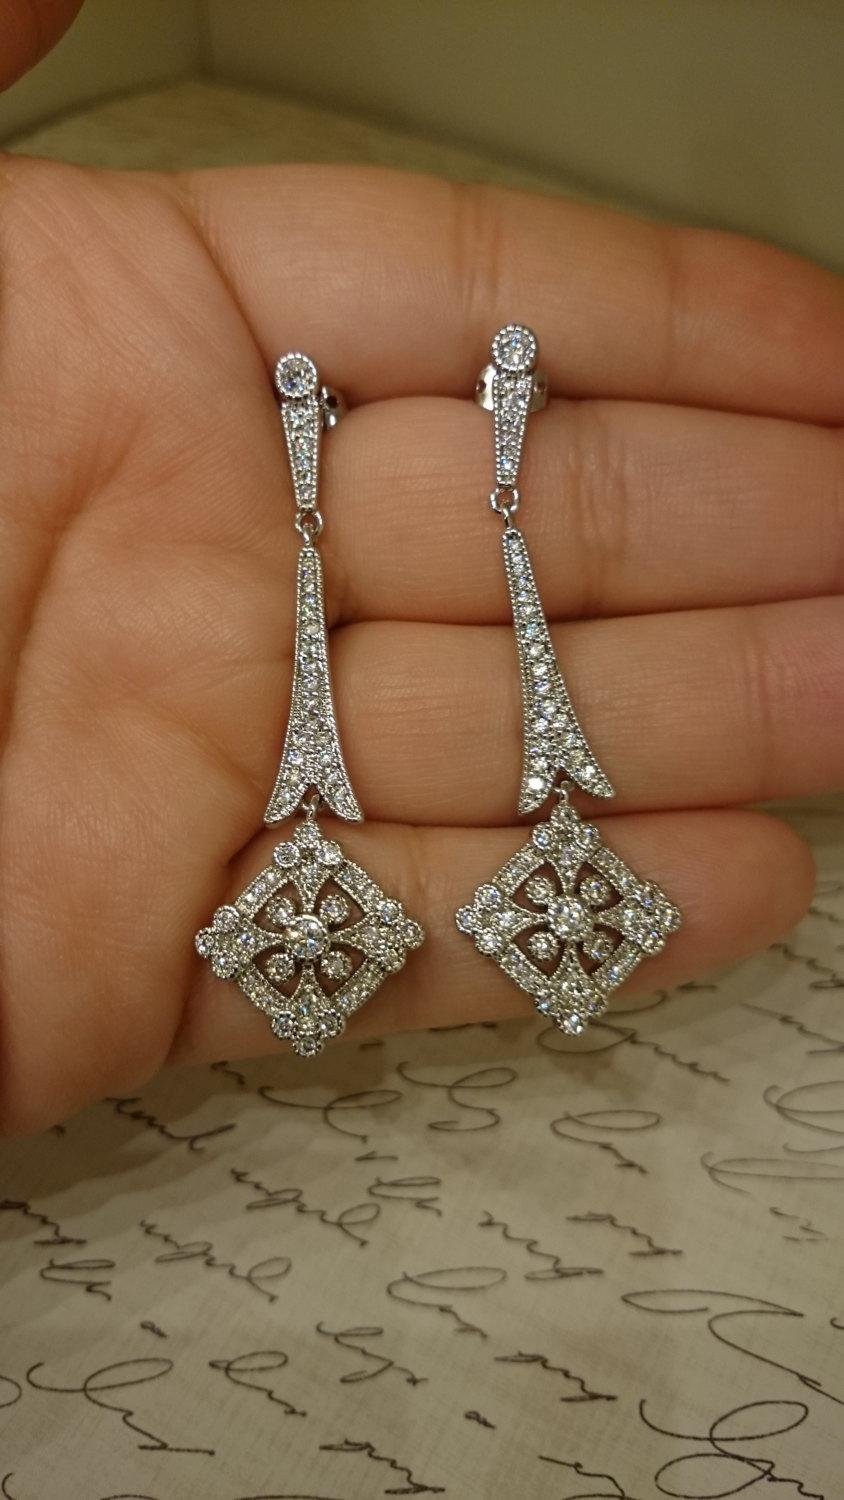 Art Deco Earring Vintage Style 1920 S Bridal Earrings Antique Silver Crystal Chandelier Great Gatsby Cz Downton Abbey